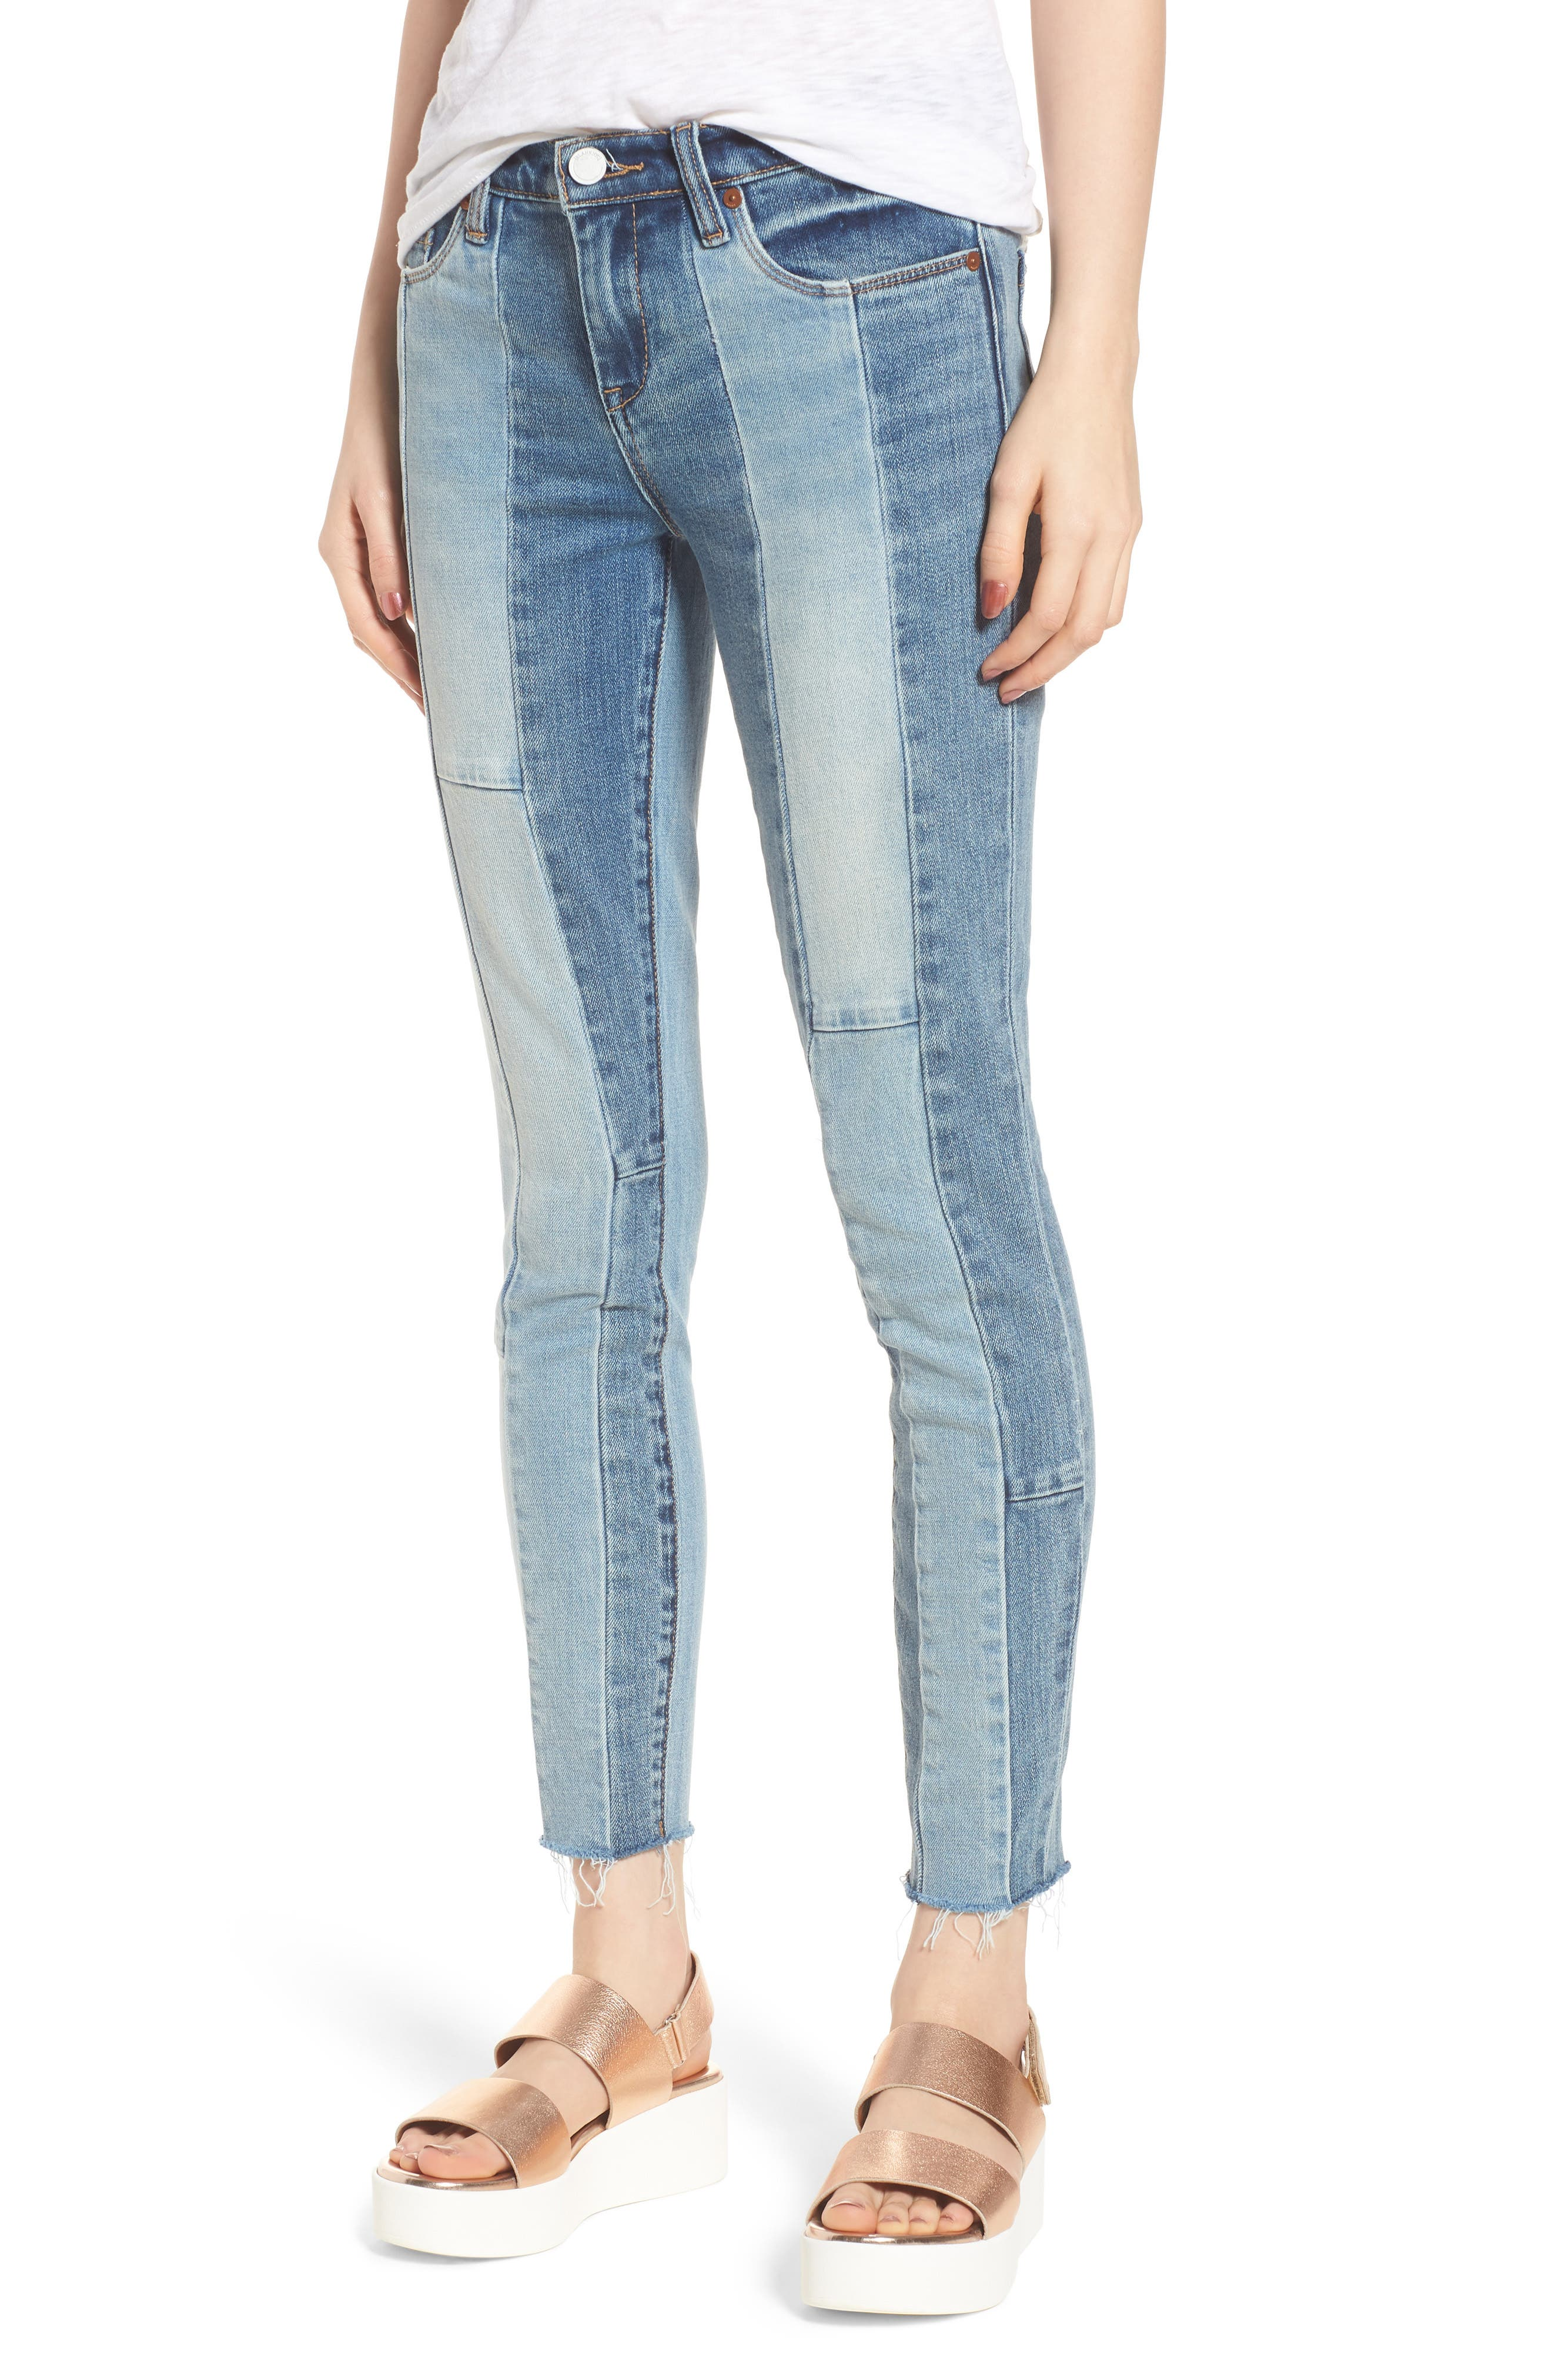 Alternate Image 1 Selected - BLANKNYC The Reade Patchwork Crop Skinny Jeans (Midtown Madness)